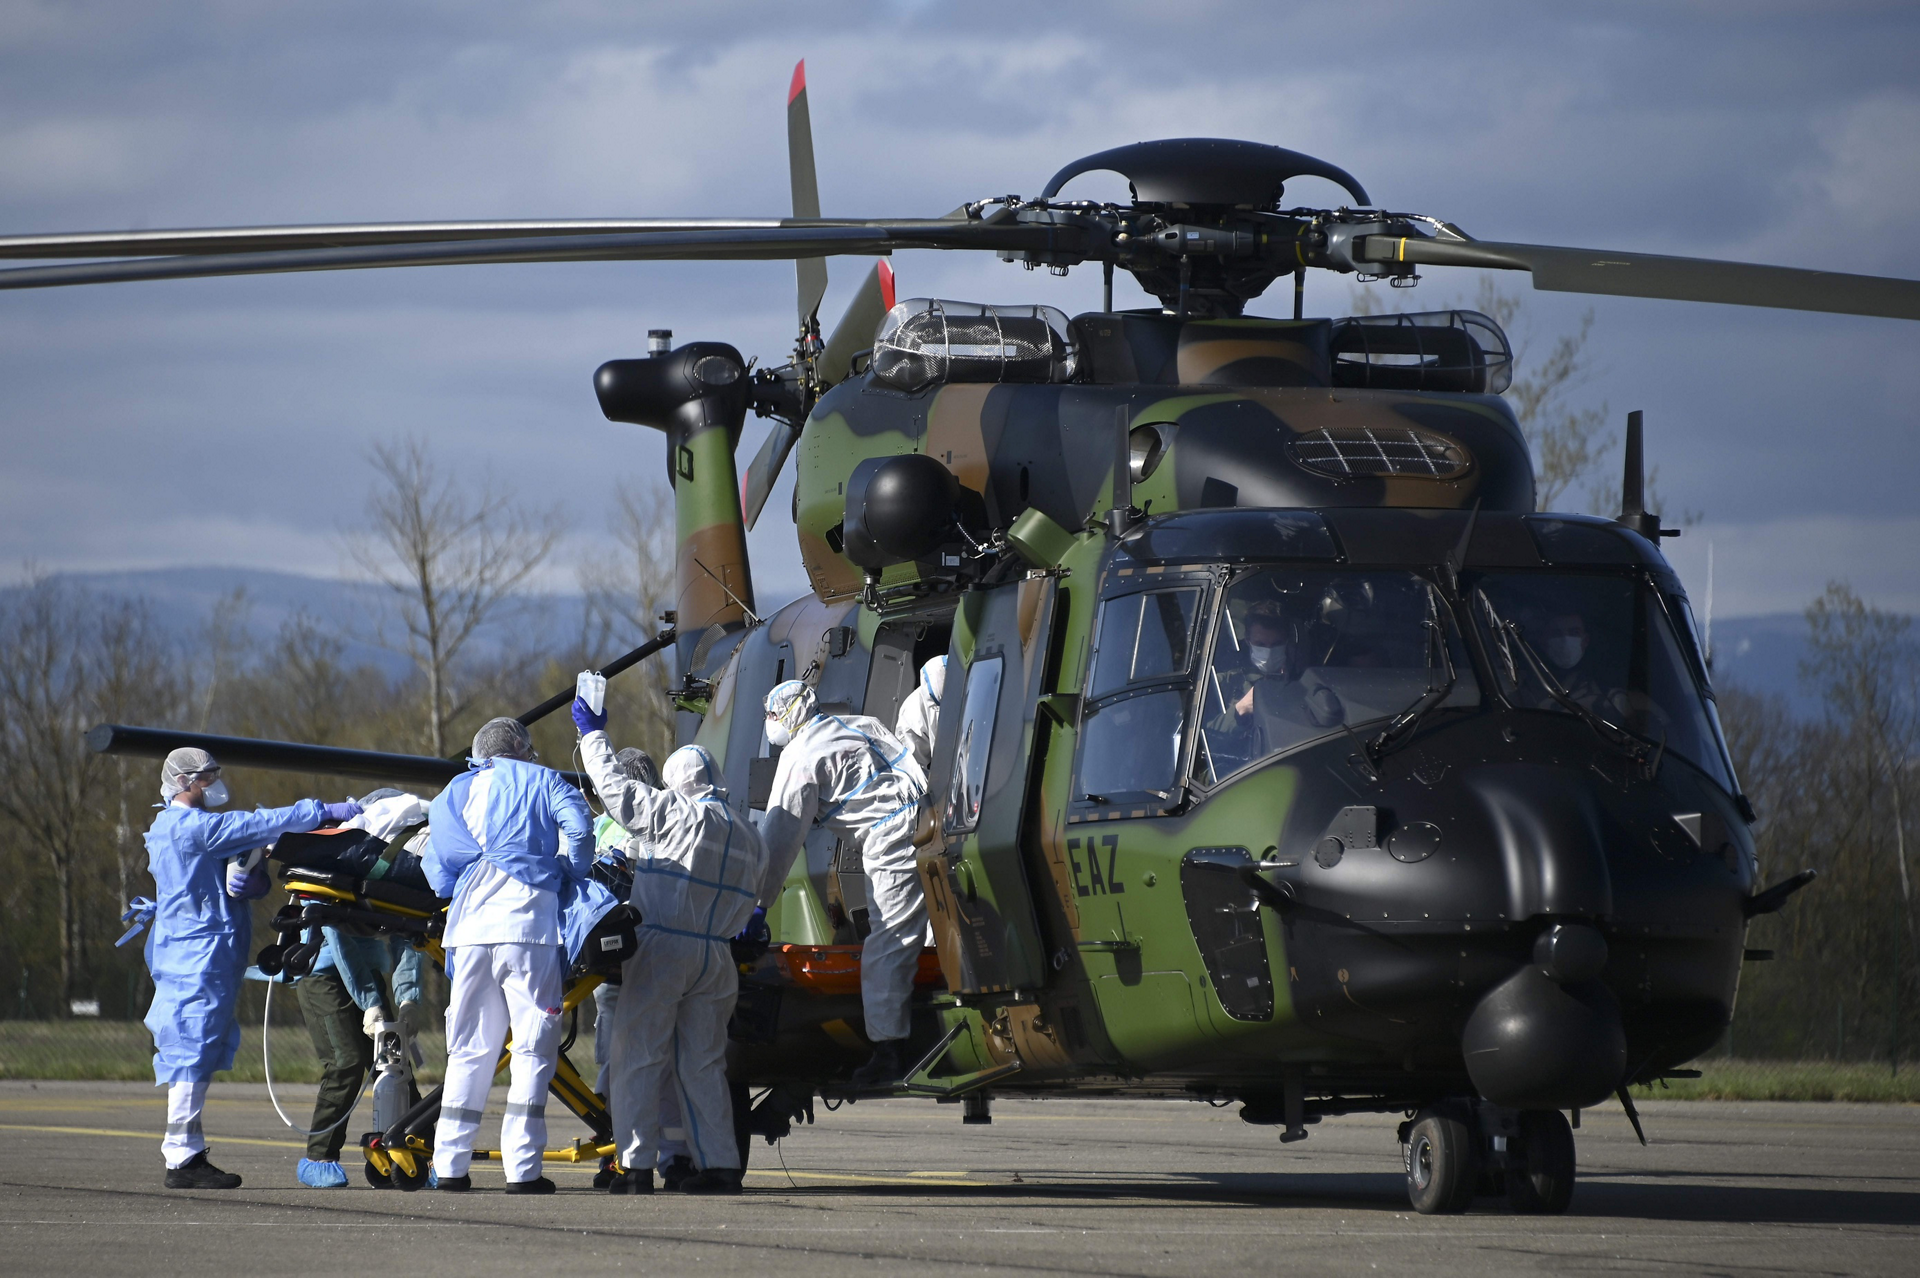 Medical staff push a Covid-19 patient on a stretcher towards the 1st Combat Helicopter Regiment's (RHC) NH90 in Strasbourg, on March 30, 2020.